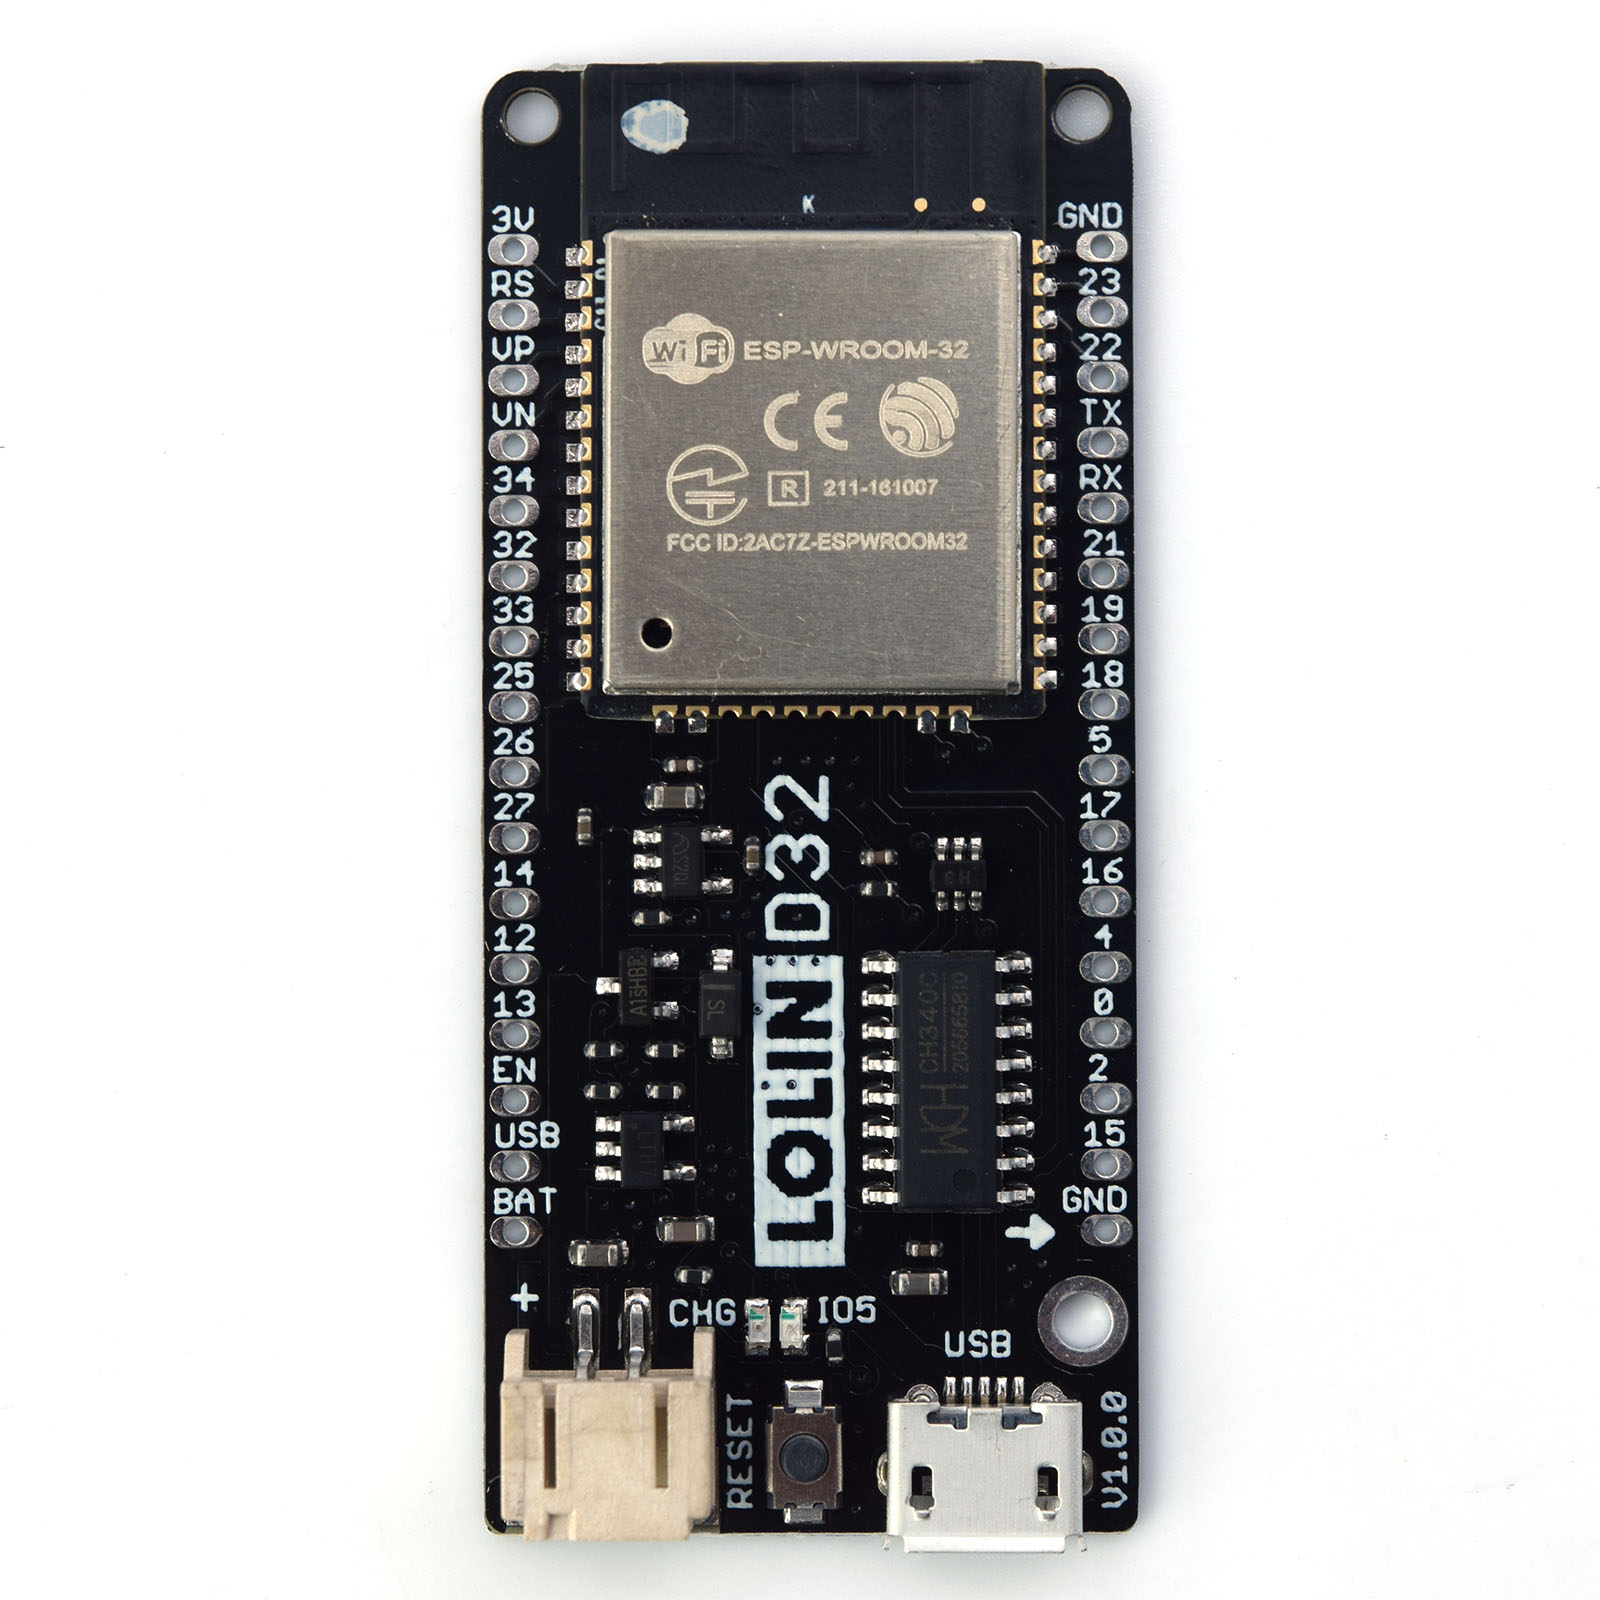 WEMOS LOLIN32 V1.0.0 - wifi & bluetooth board based ESP-32 4MB FLASH устройство аккордеона